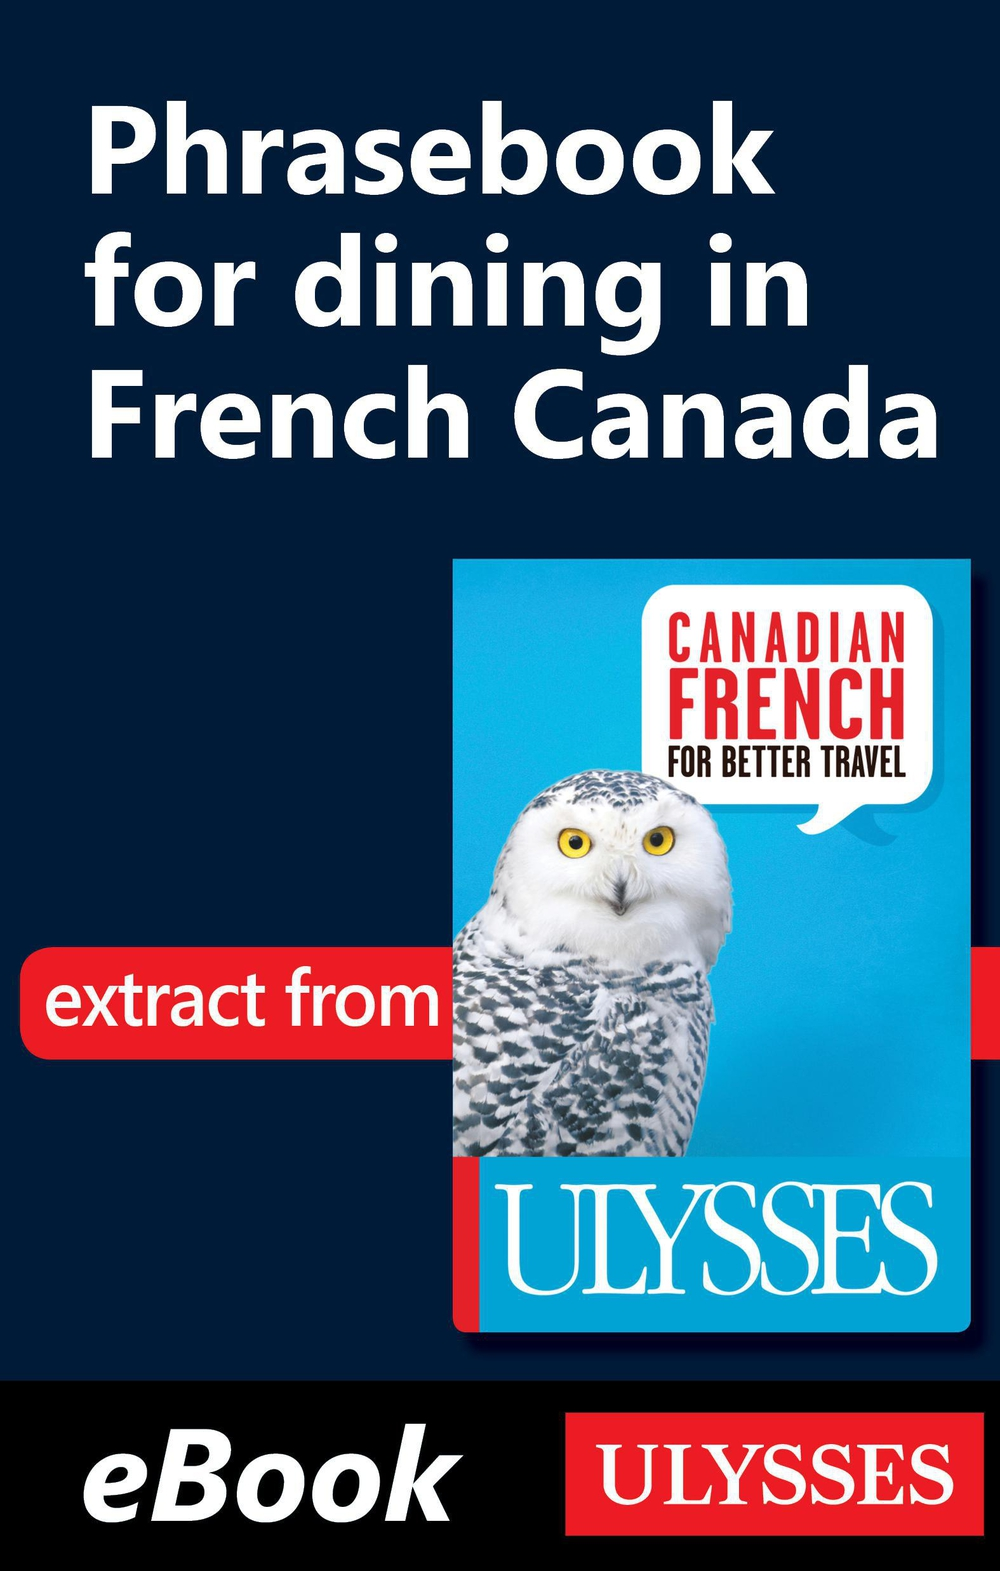 Phrasebook for dining in French Canada By: Collective